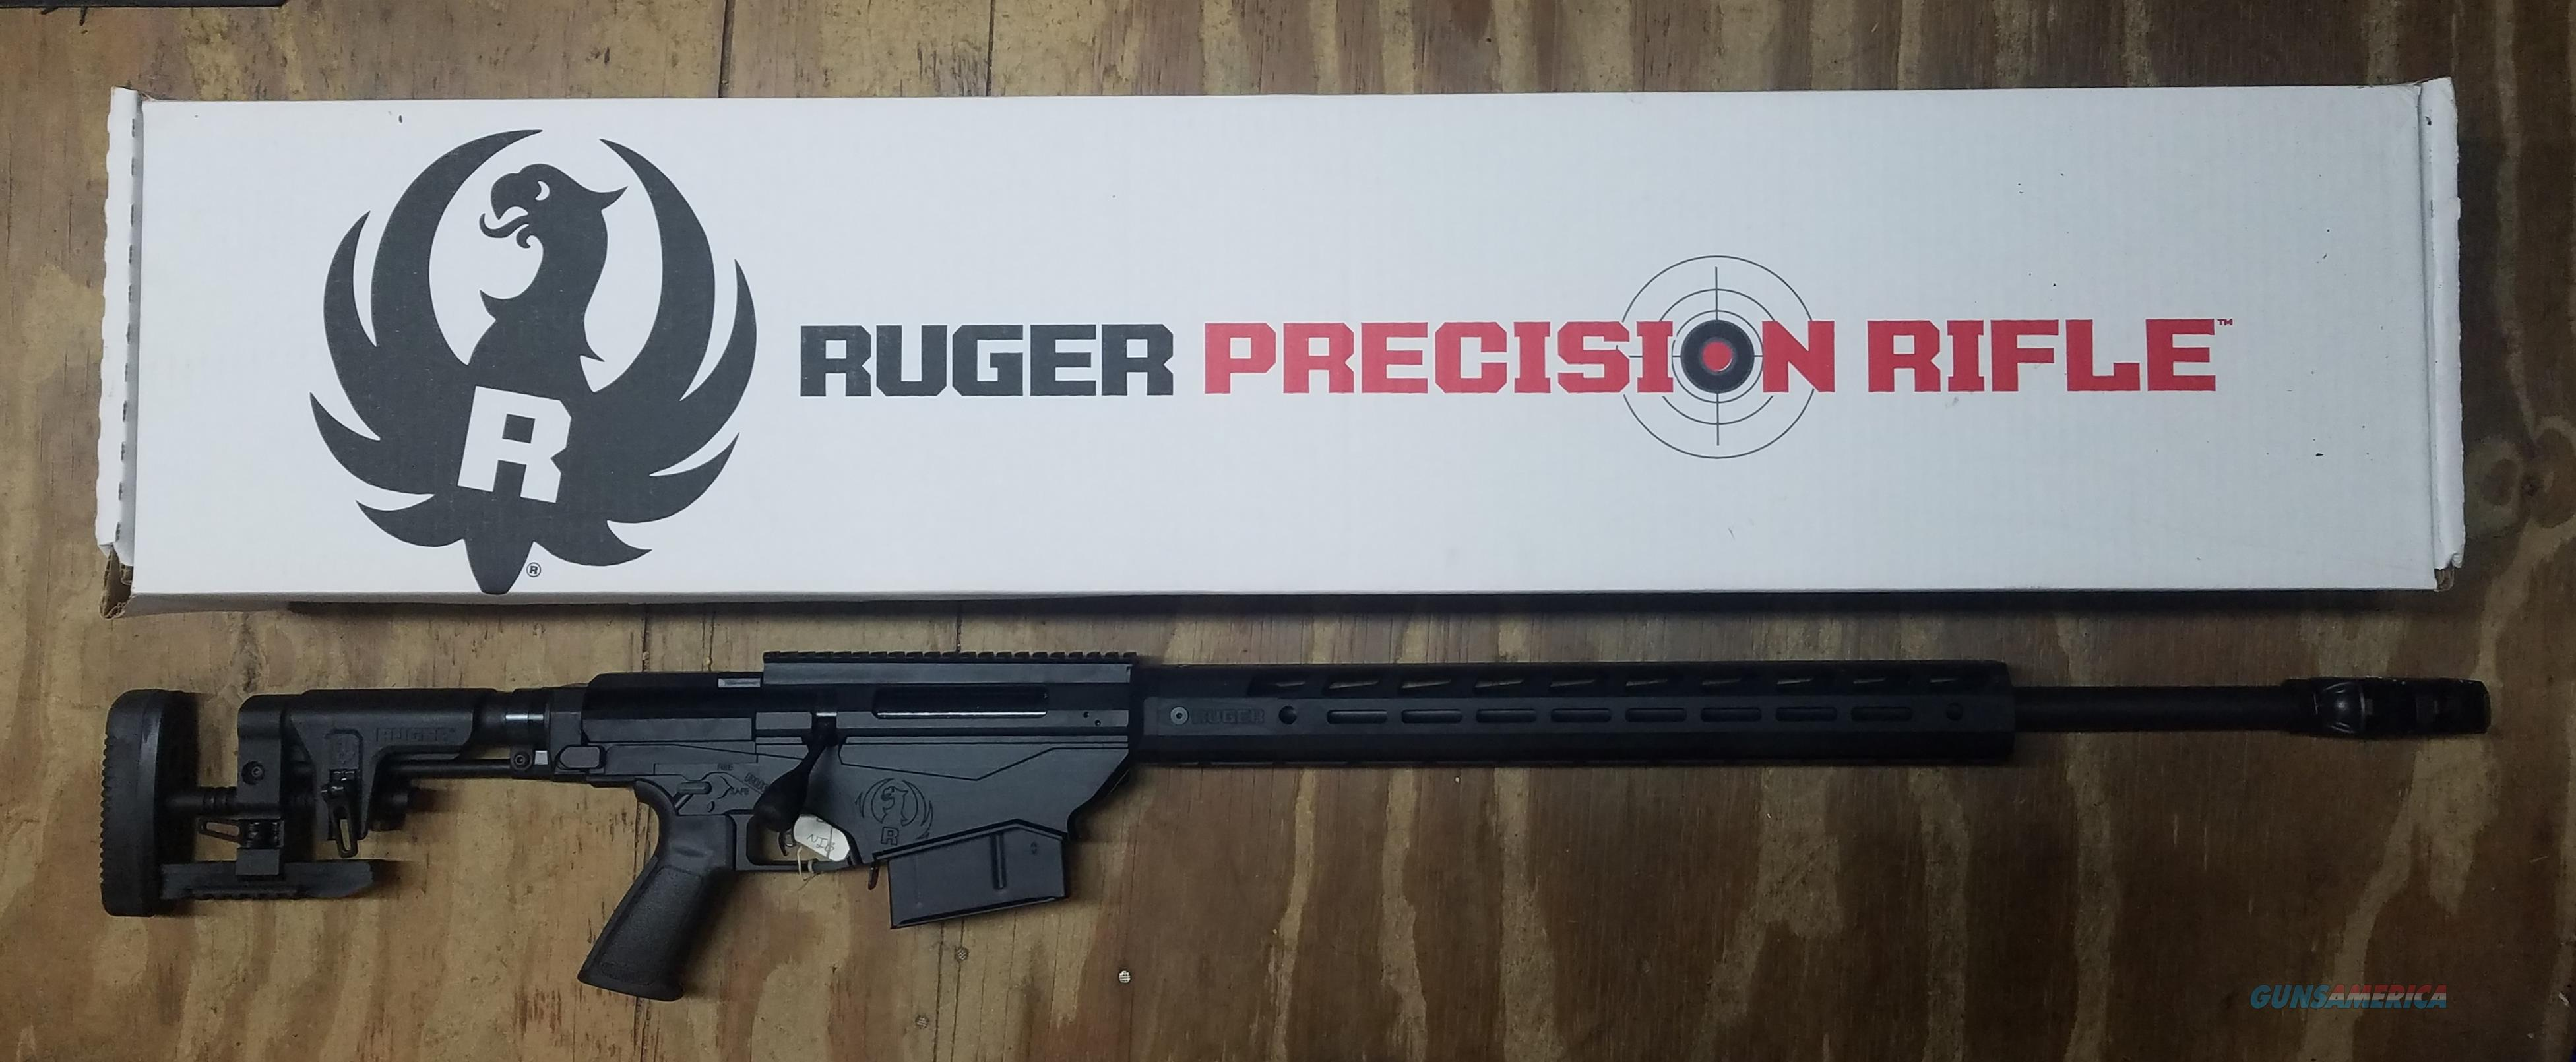 Ruger Precision Rifle, .338 Lapua Magnum 18080  Guns > Rifles > Ruger Rifles > Precision Rifle Series